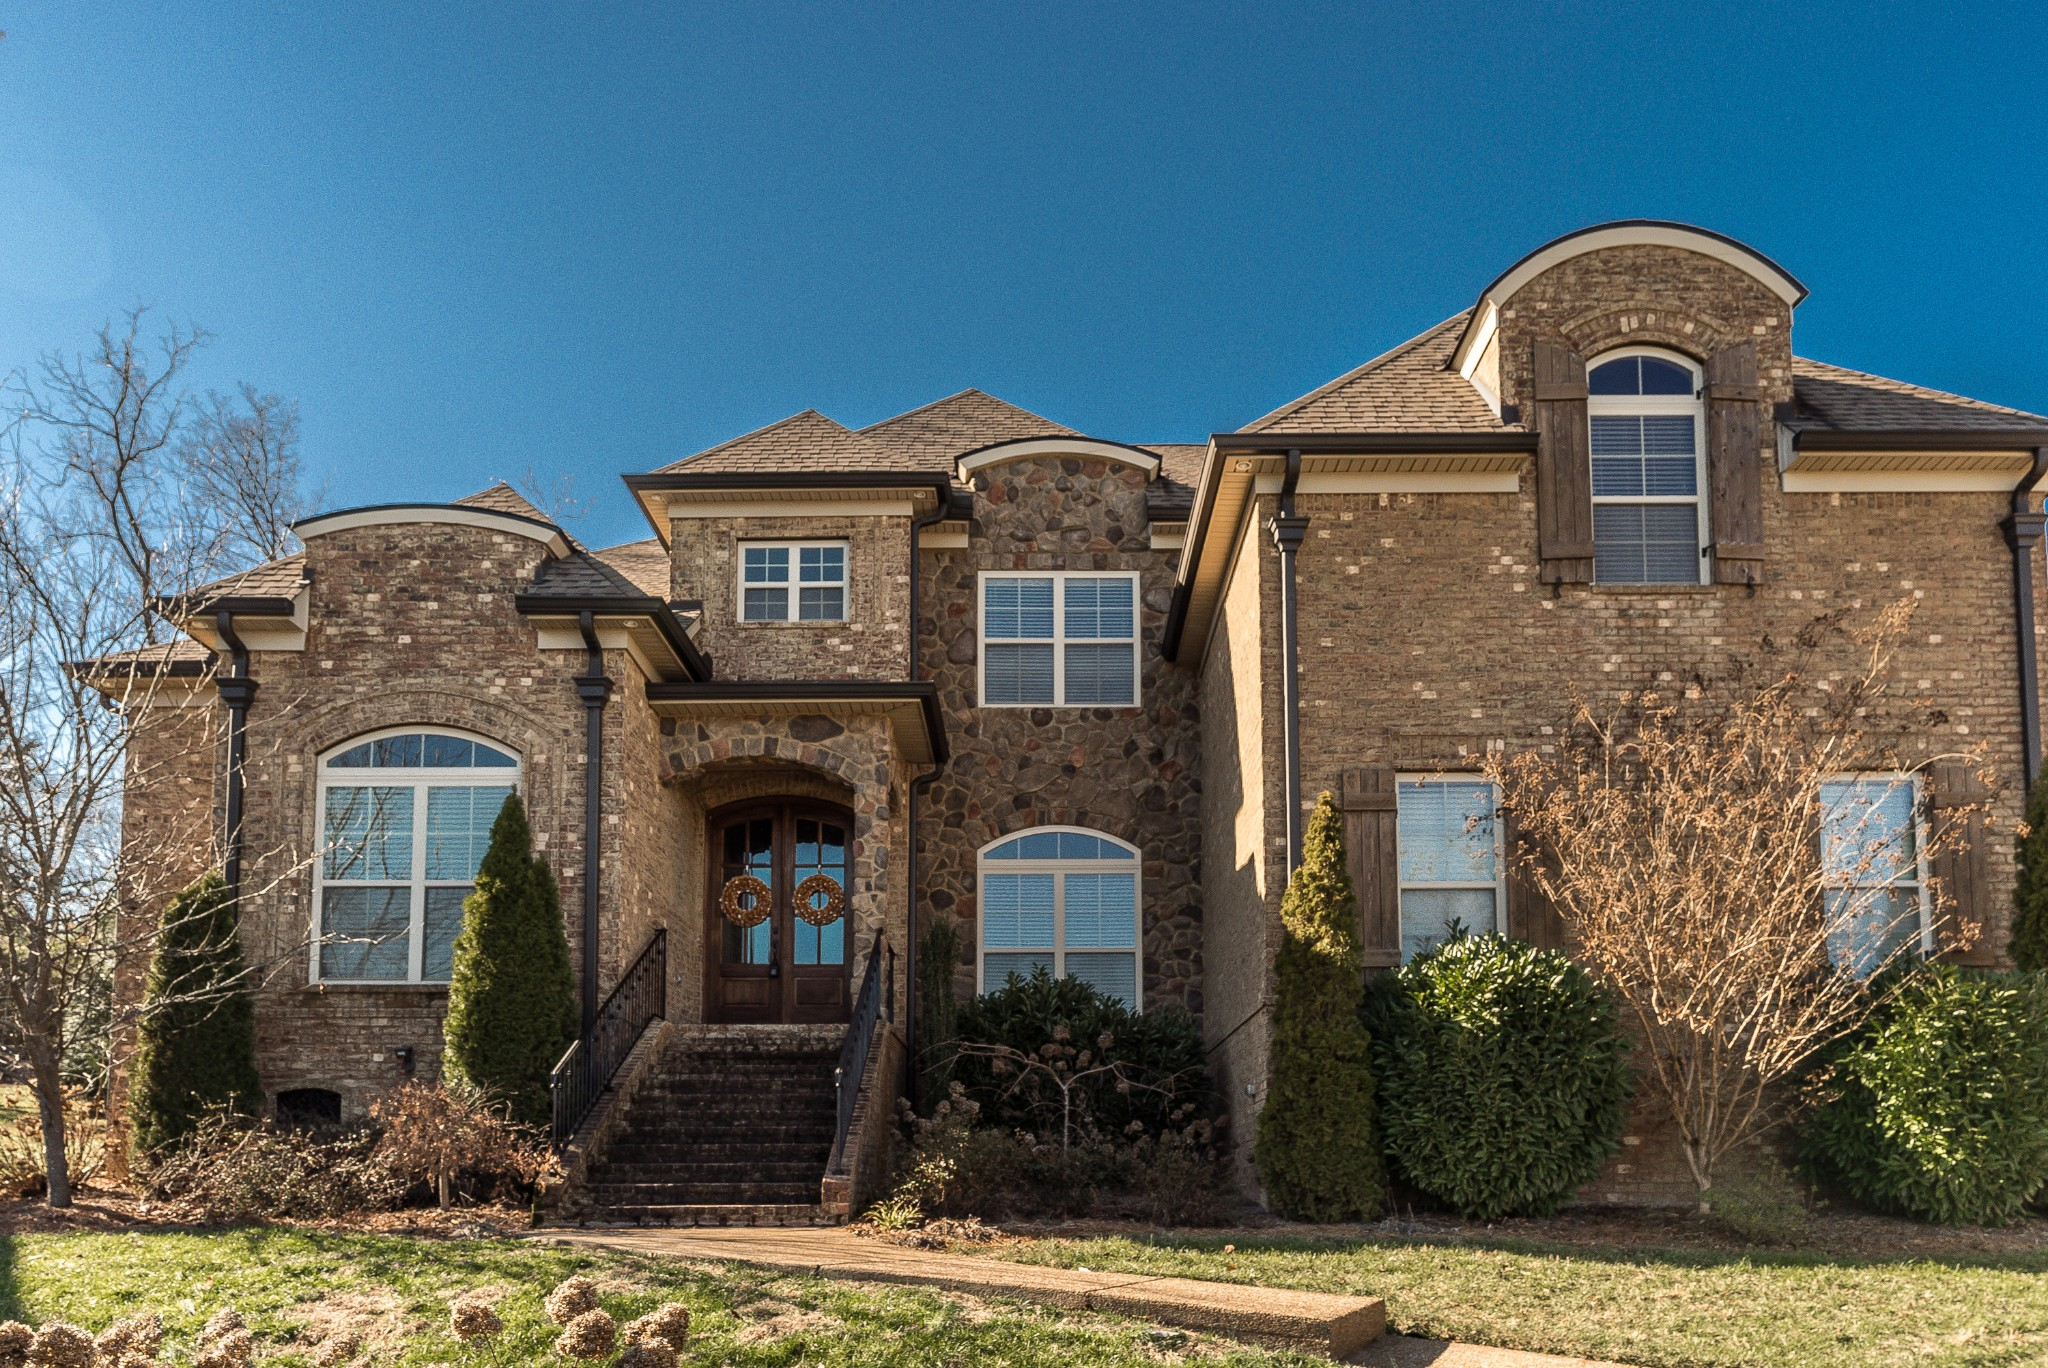 3004 Zeal Ct, Spring Hill, TN 37174 - Spring Hill, TN real estate listing